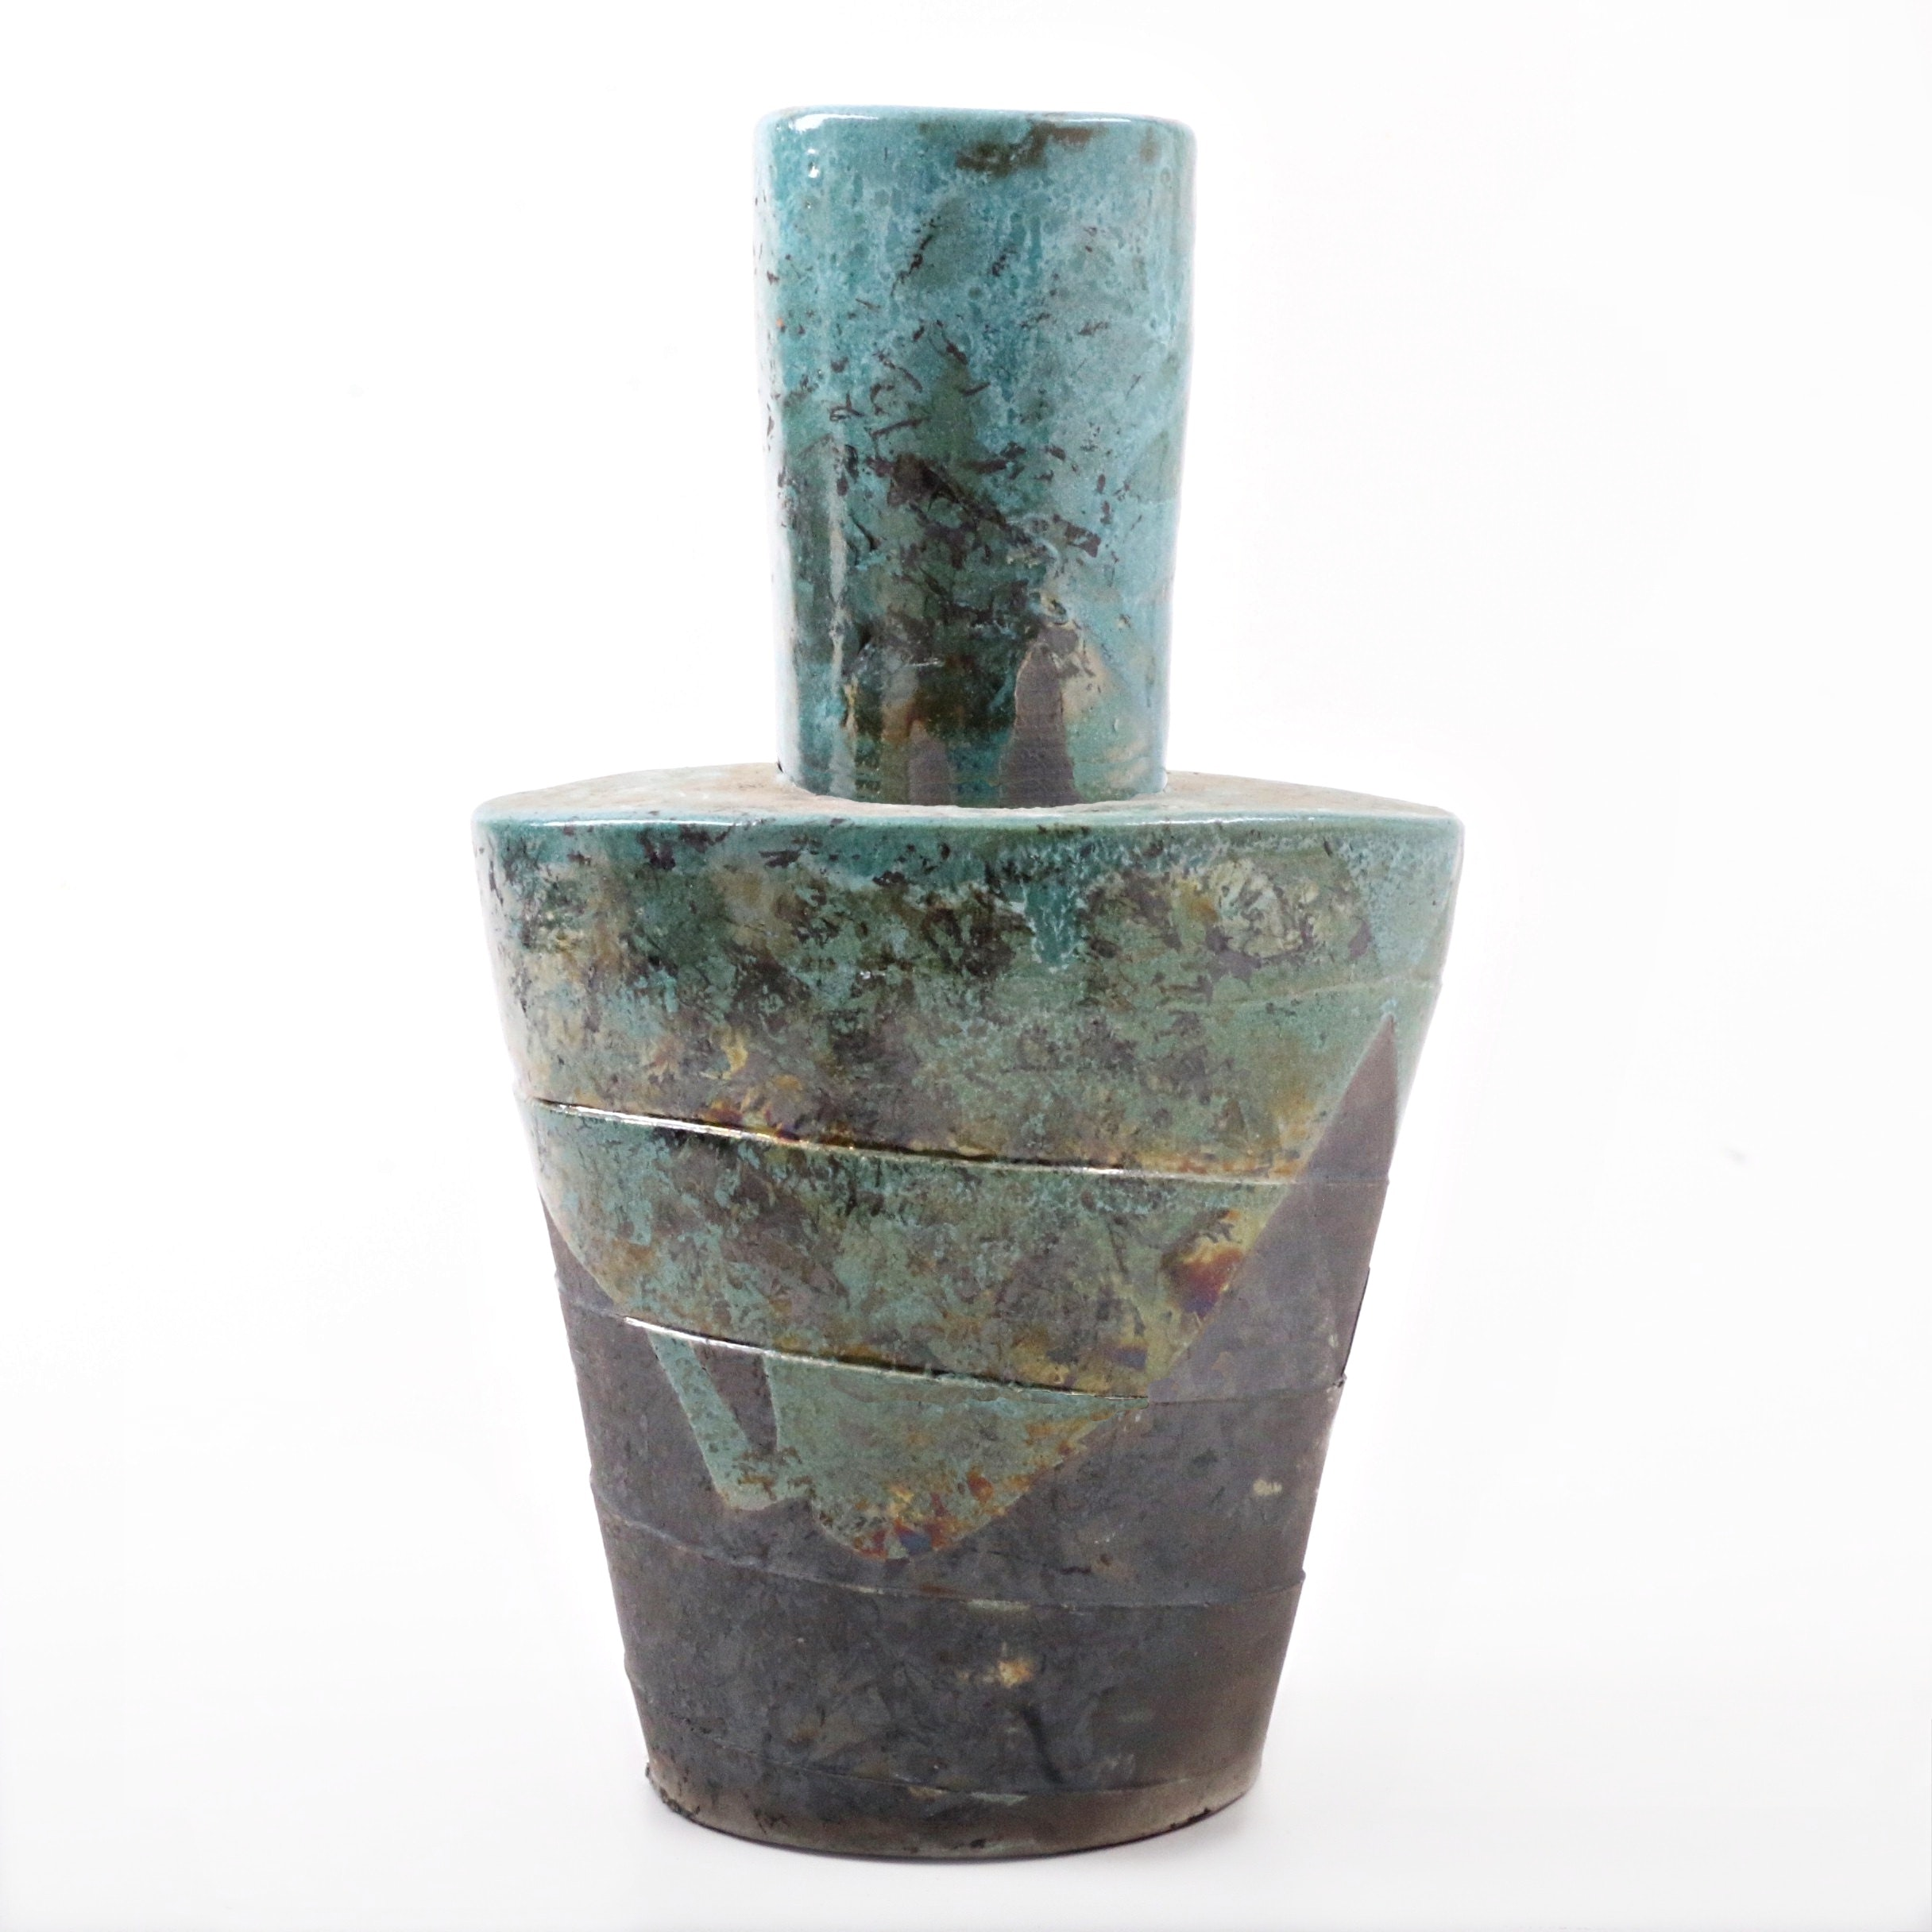 Hand Thrown and Altered Raku Fired Vase